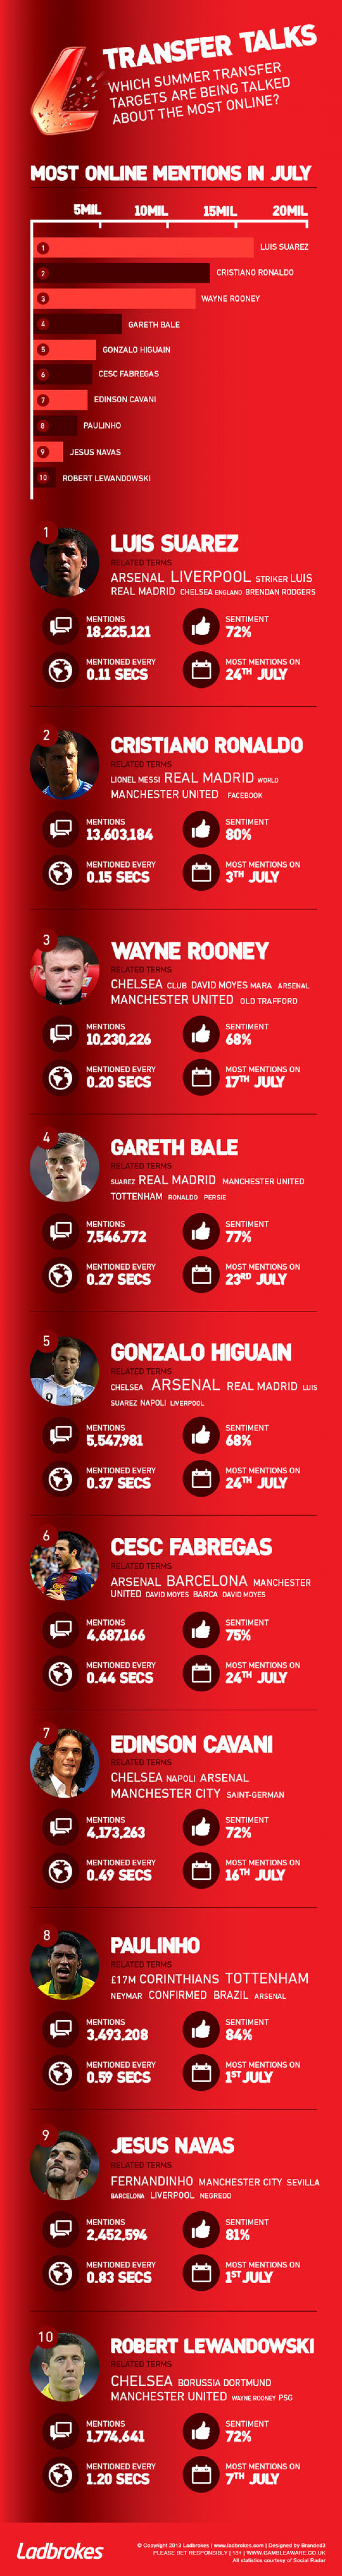 Transfer Talks Infographic